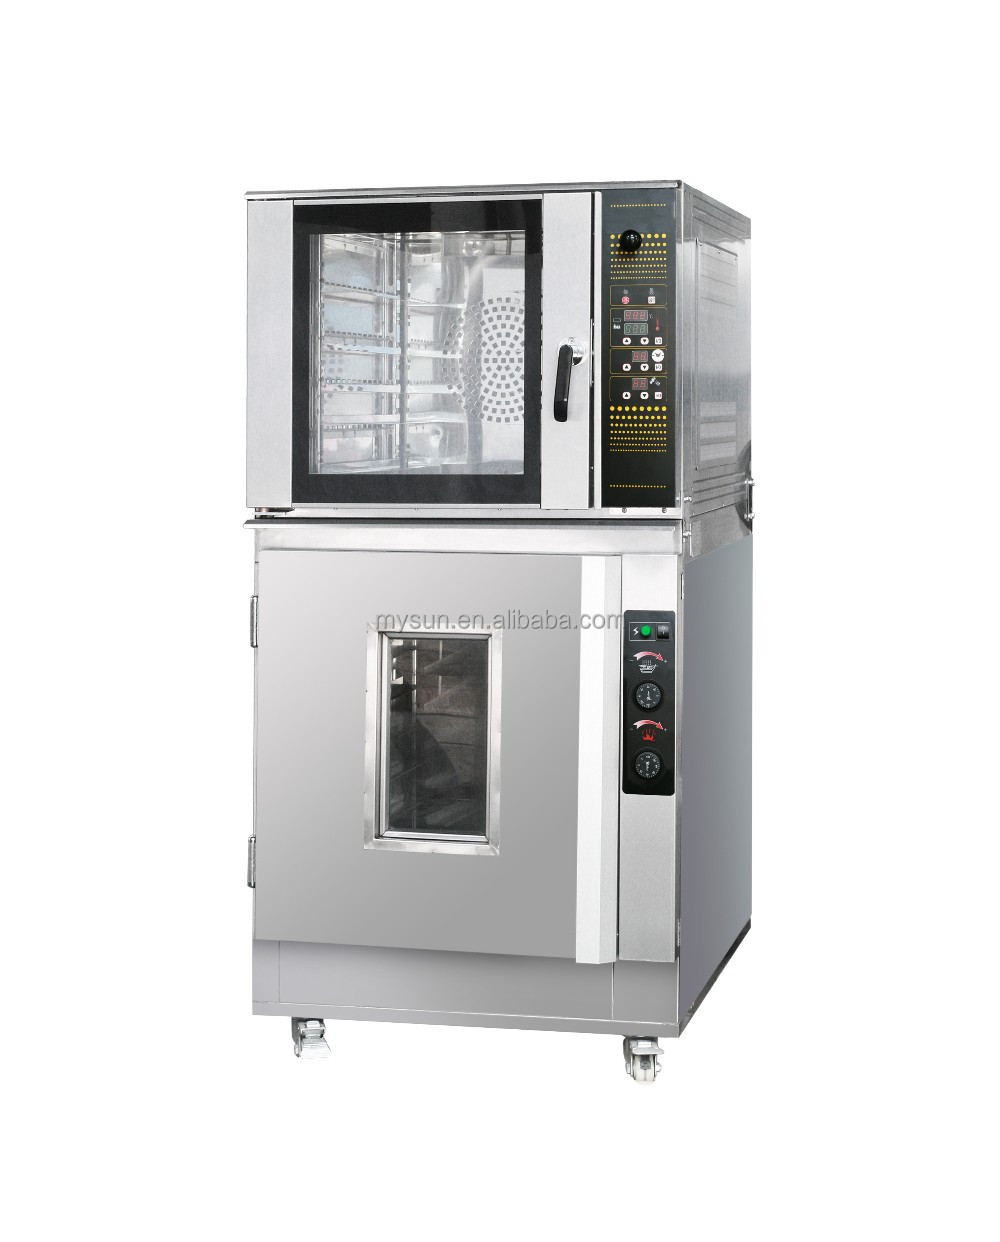 2017 Electric Small 5 Trays Convection Bakery Ovens With 16 Trays proofer Bread Automatic Oven